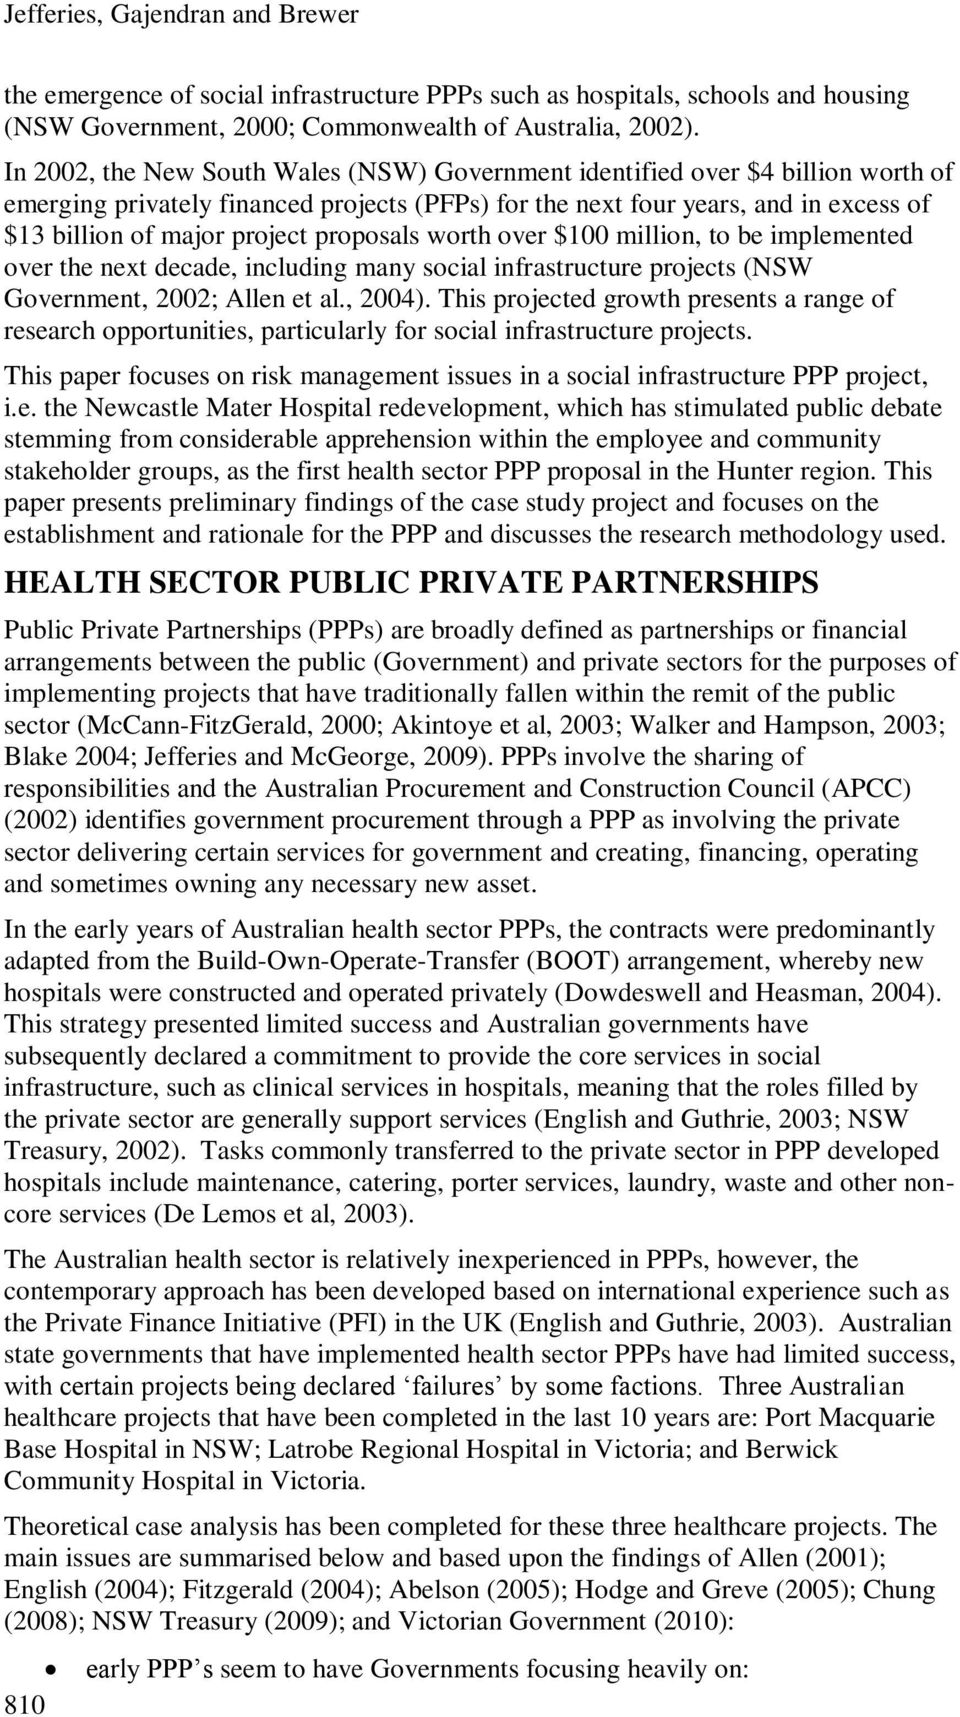 proposals worth over $100 million, to be implemented over the next decade, including many social infrastructure projects (NSW Government, 2002; Allen et al., 2004).